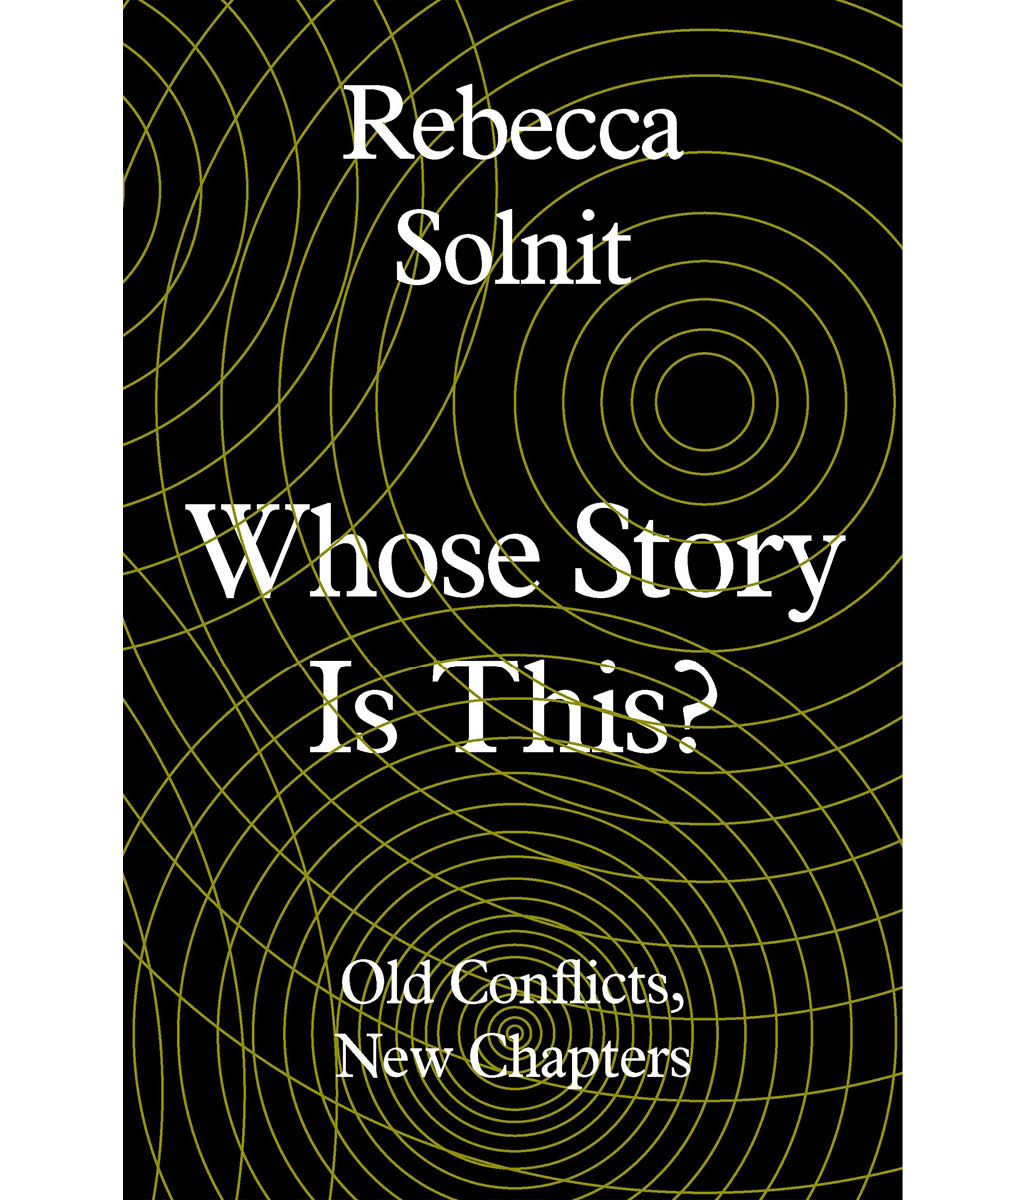 Whose Story is This? : Old Conflicts, New Chapters Rebecca Solnit